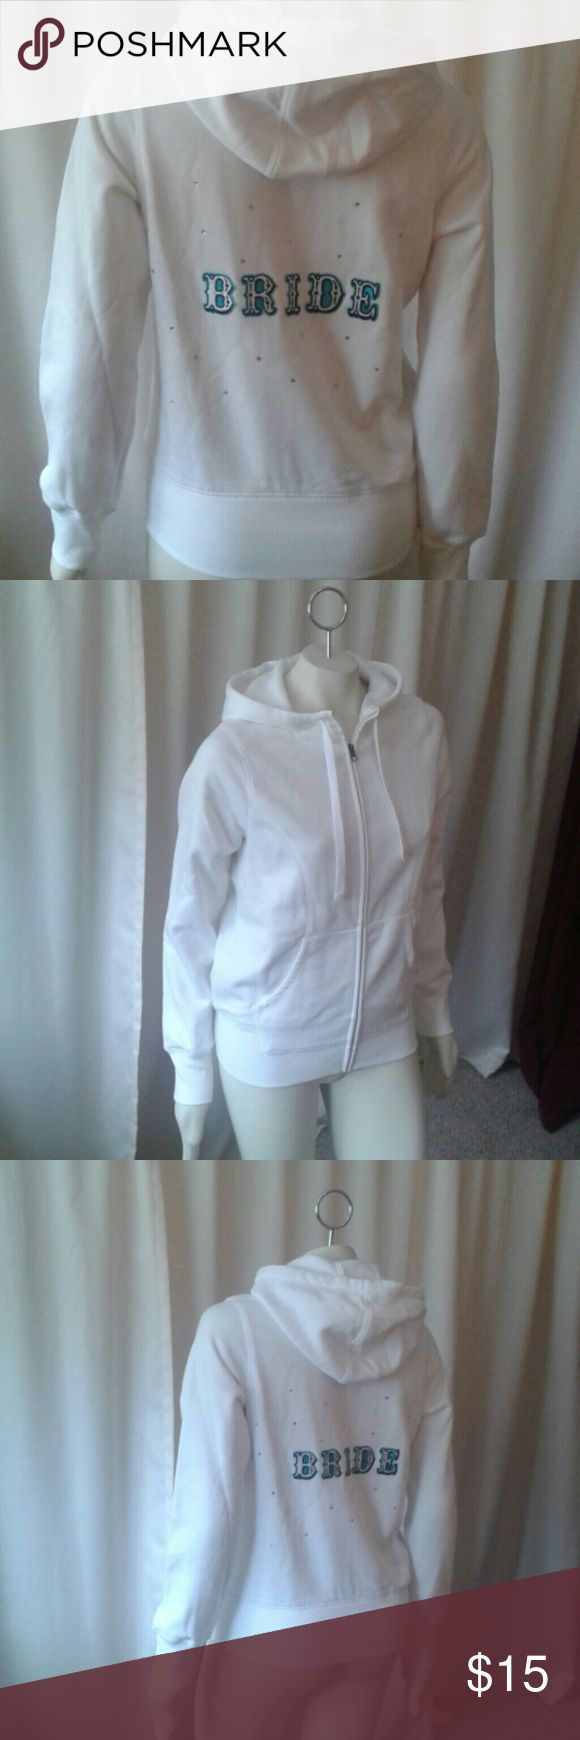 """Bride"" zip up hoodie White, zip up hoodie with ""Tiffany blue"" letters spelling BRIDE and silver/clear  gemstones Front pockets and drawstring hood.  Never worn, great condition!! Tops Sweatshirts & Hoodies"